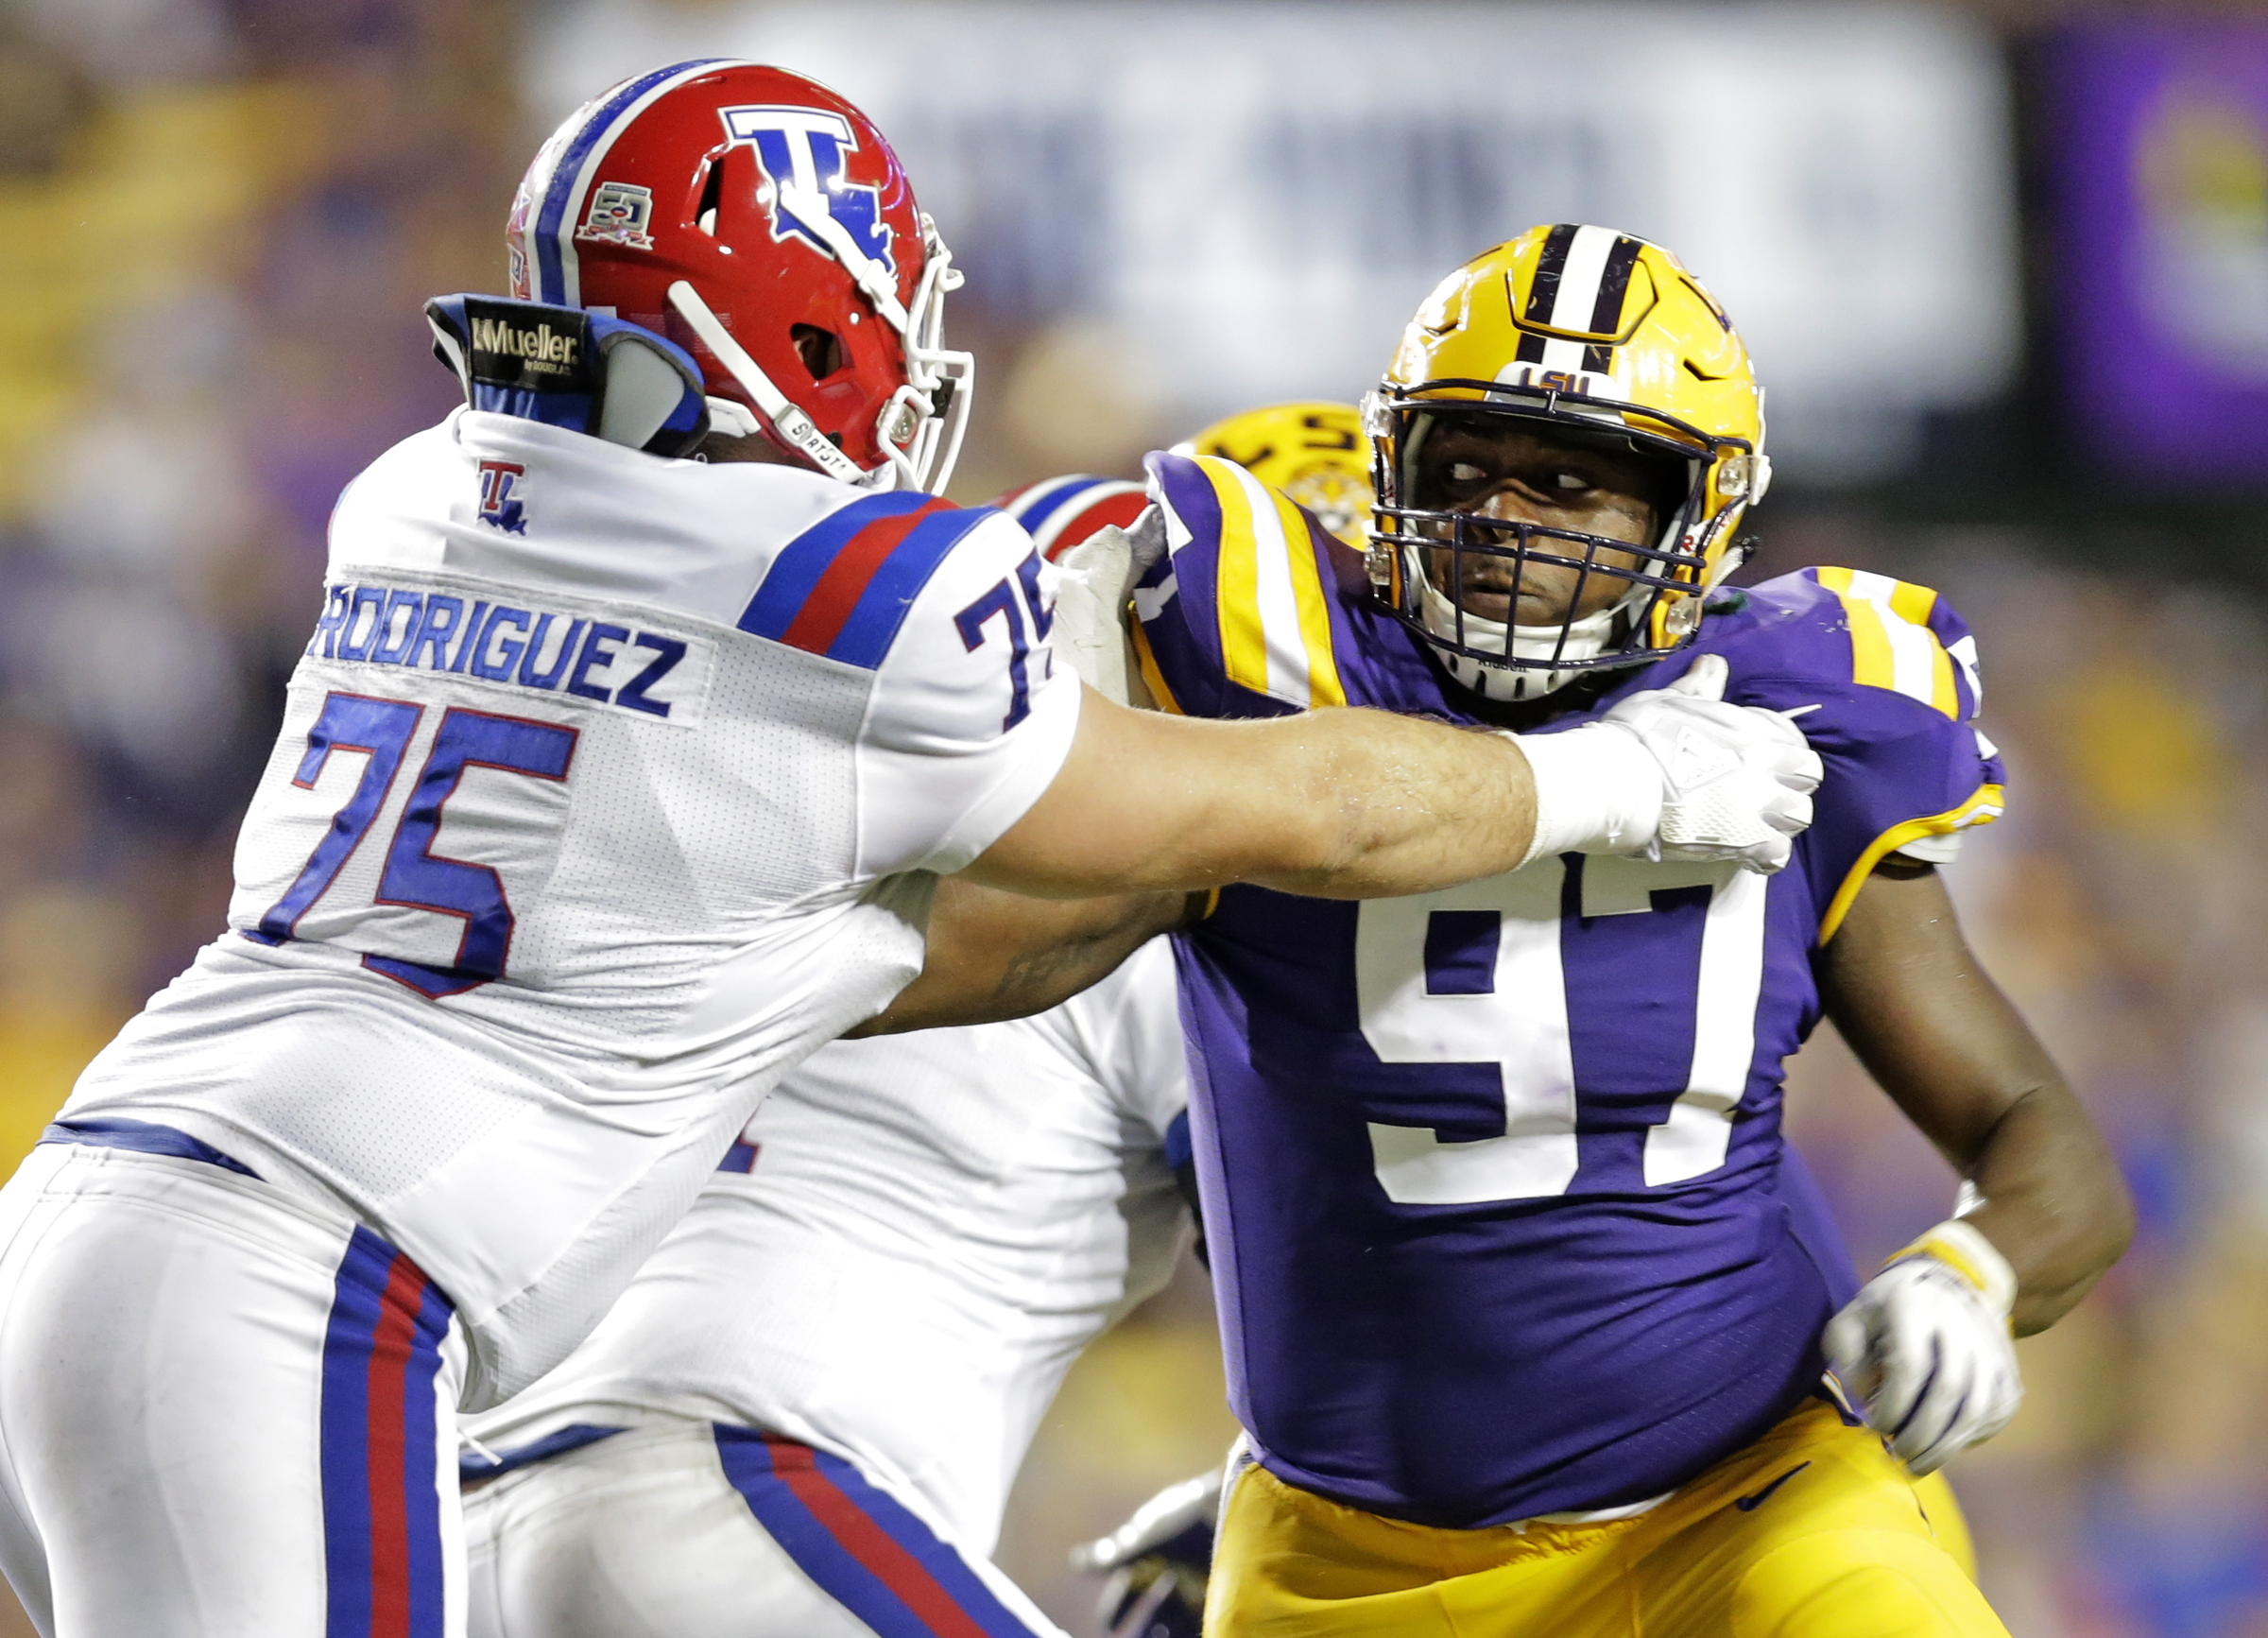 LSU Tigers defensive end Glen Logan (97) competes against Louisiana Tech Bulldogs offensive lineman Michael Rodriguez (75) during second half action in Baton Rouge on Saturday, September 22, 2018. The LSU Tigers defeated the Louisiana Tech Bulldogs 38-21. (Photo by Brett Duke, NOLA.com | The Times-Picayune) NOLA.com | The Times-Picayune